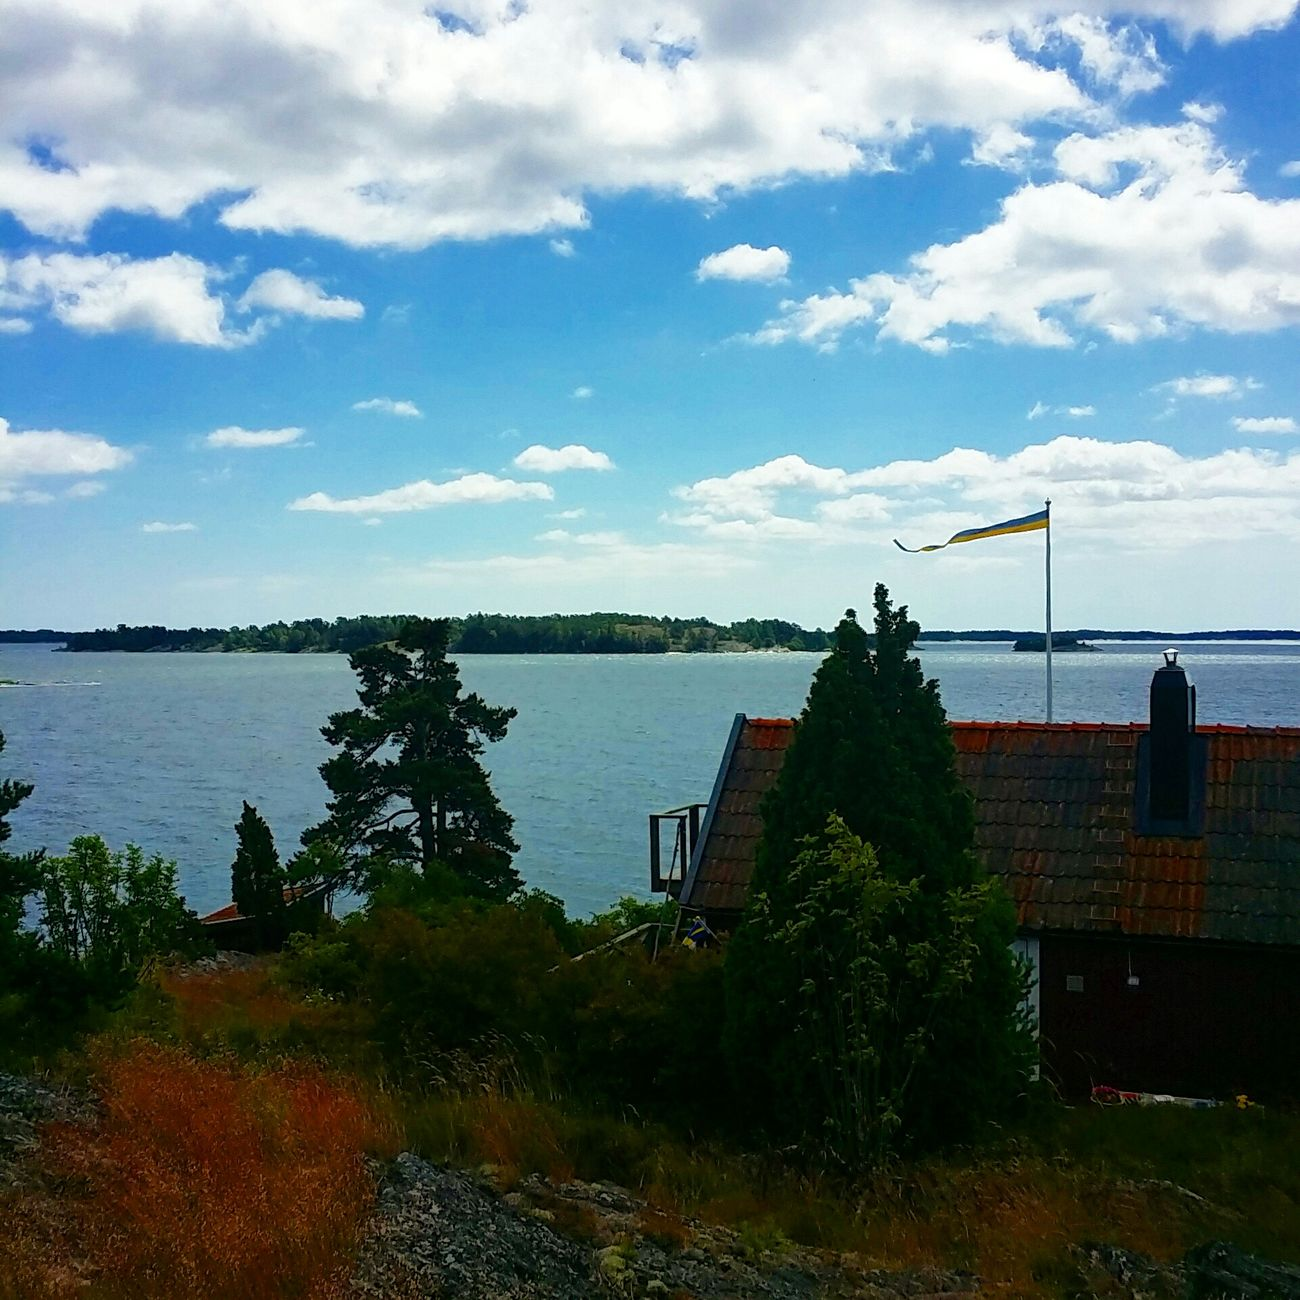 From our beautiful Stockholm archipelago. Check This Out Taking Photos Relaxing Enjoying Life Enjoying The View Enjoying Nature Enjoy The View Mobile Photography Mobilephotography